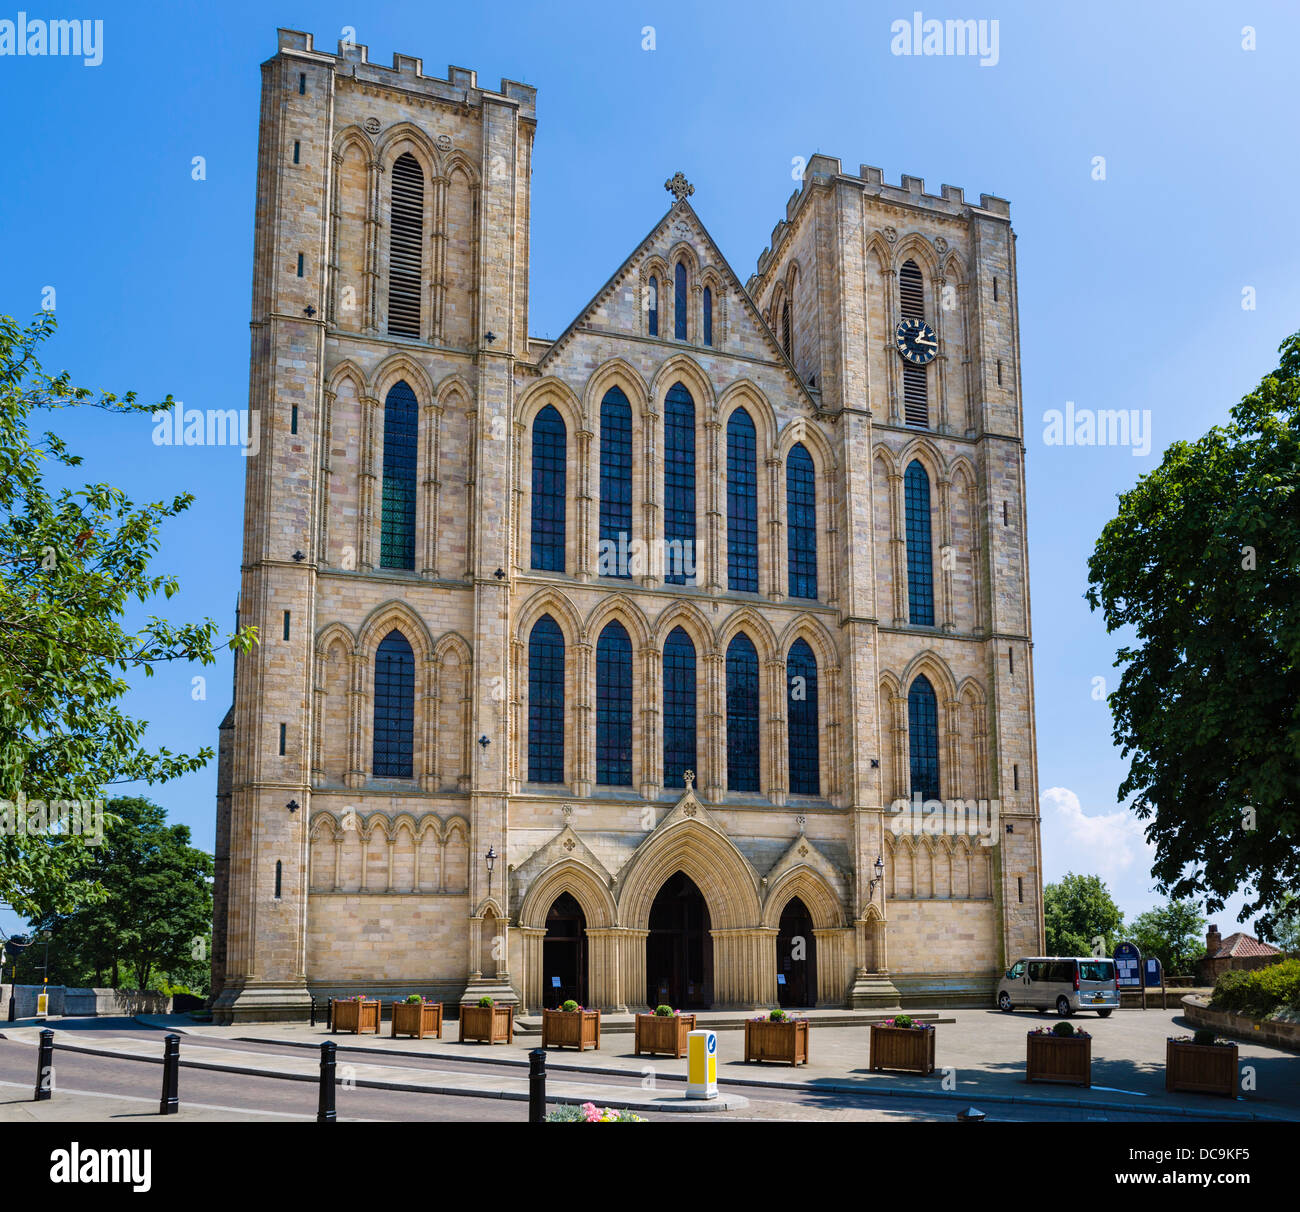 Facade of Ripon Cathedral, Ripon, North Yorkshire, England, UK - Stock Image